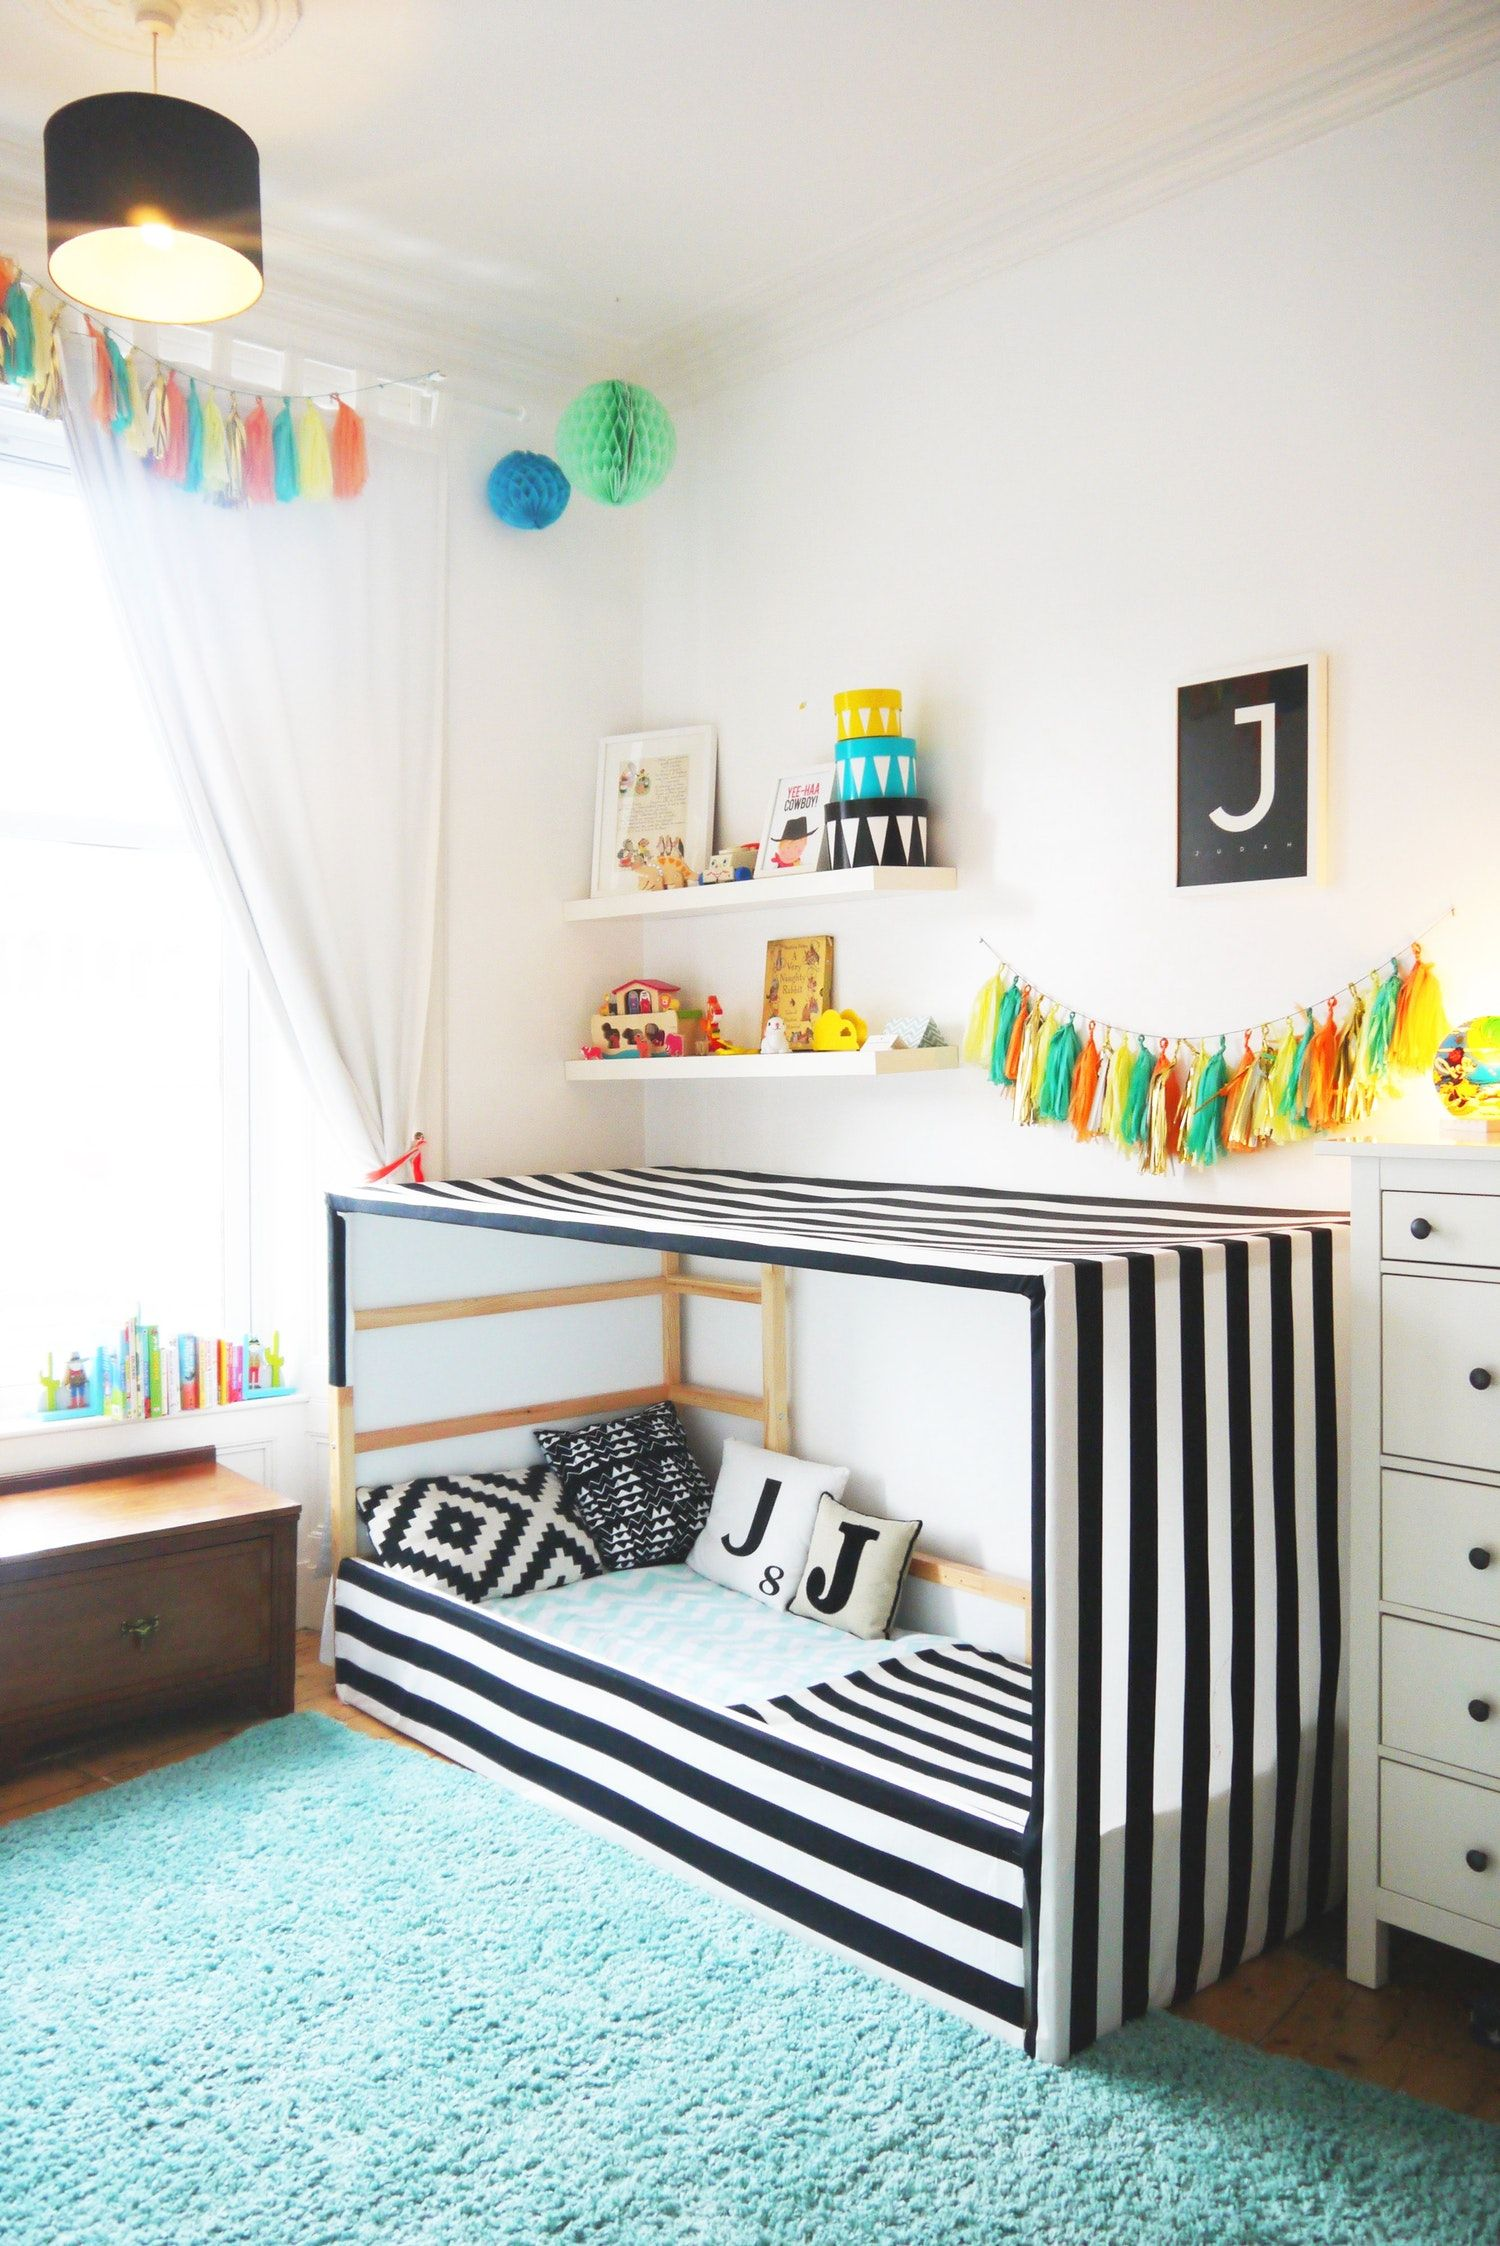 Kura loft bed ideas  The Endlessly Hackable KURA Bed Ideas for Getting a Whole New Look